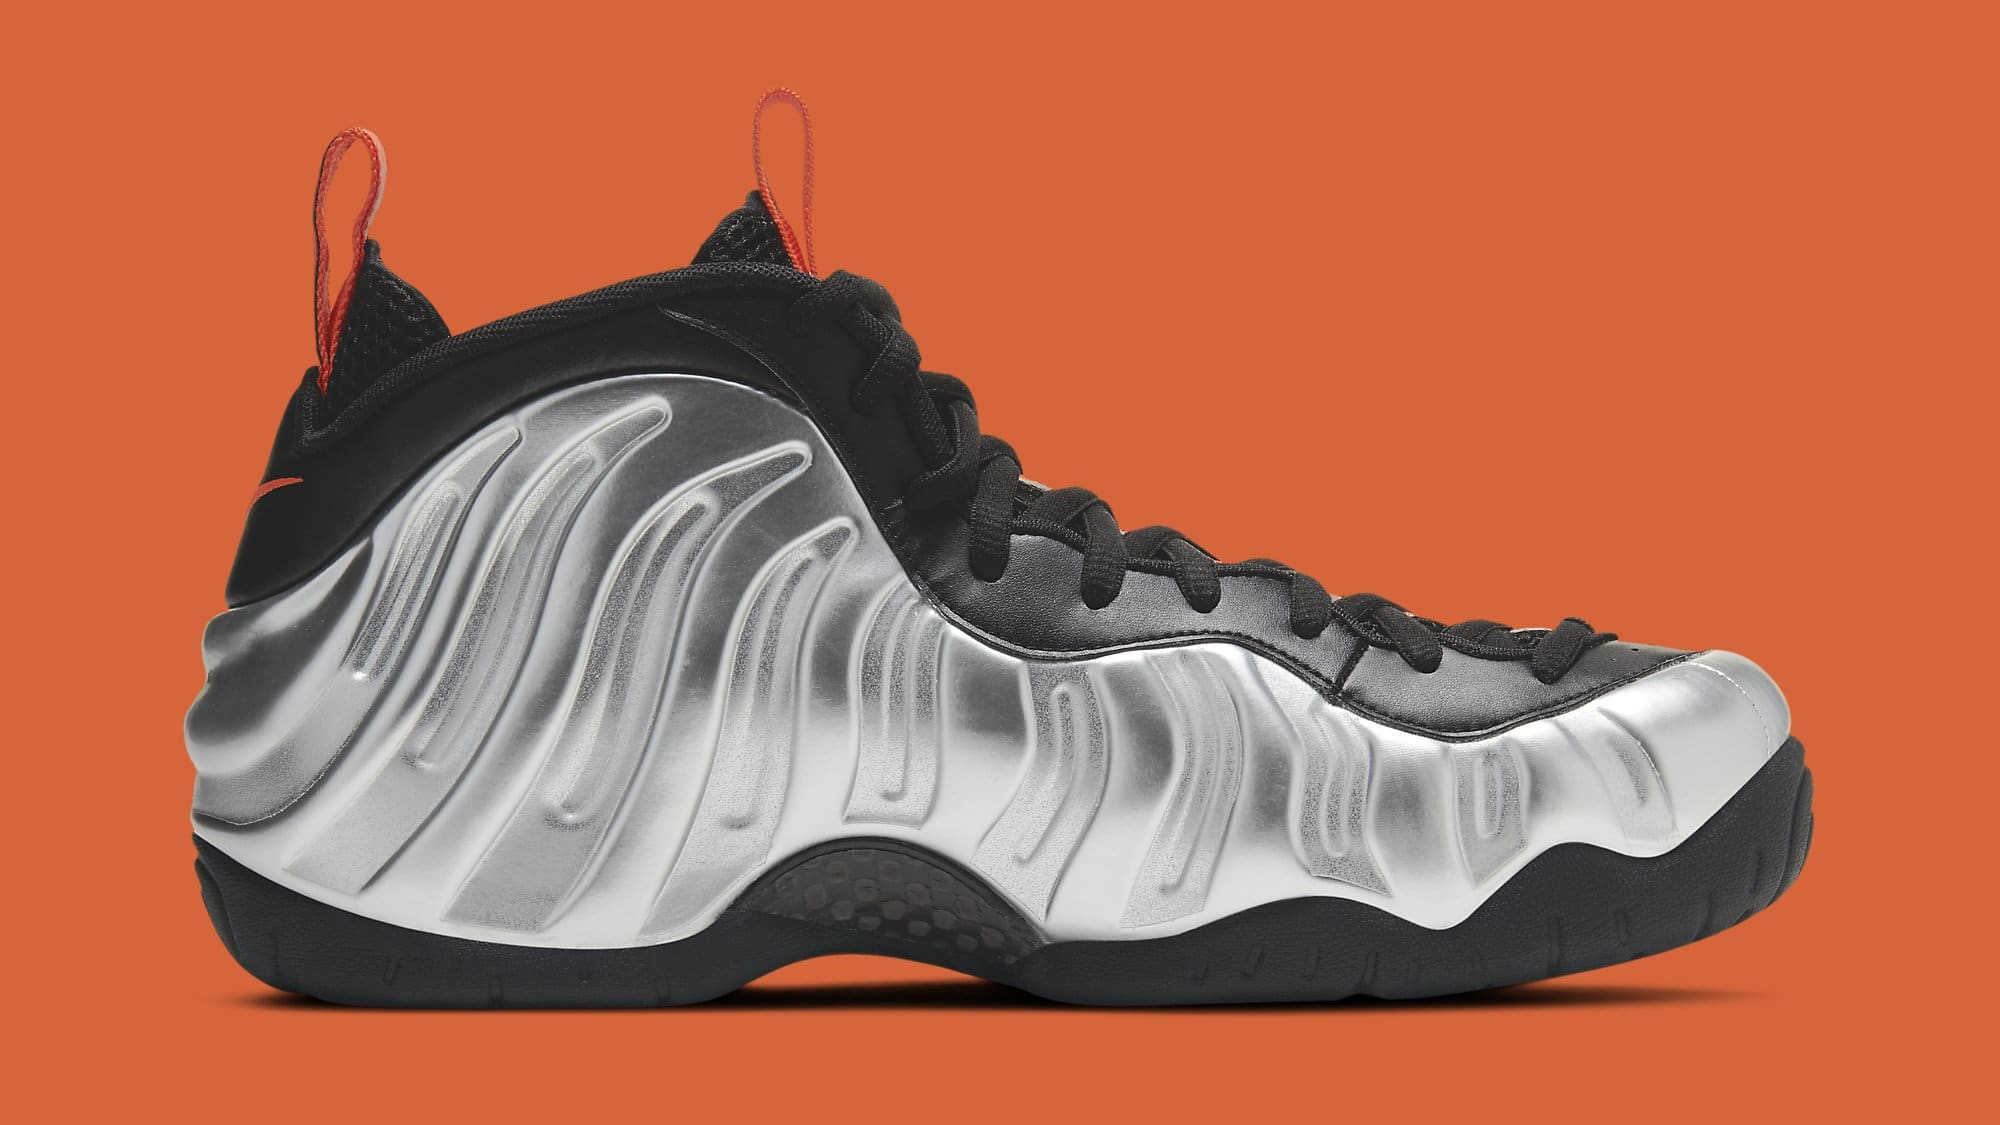 Nike Air Foamposite Pro 'Halloween' CT2286-001 Medial